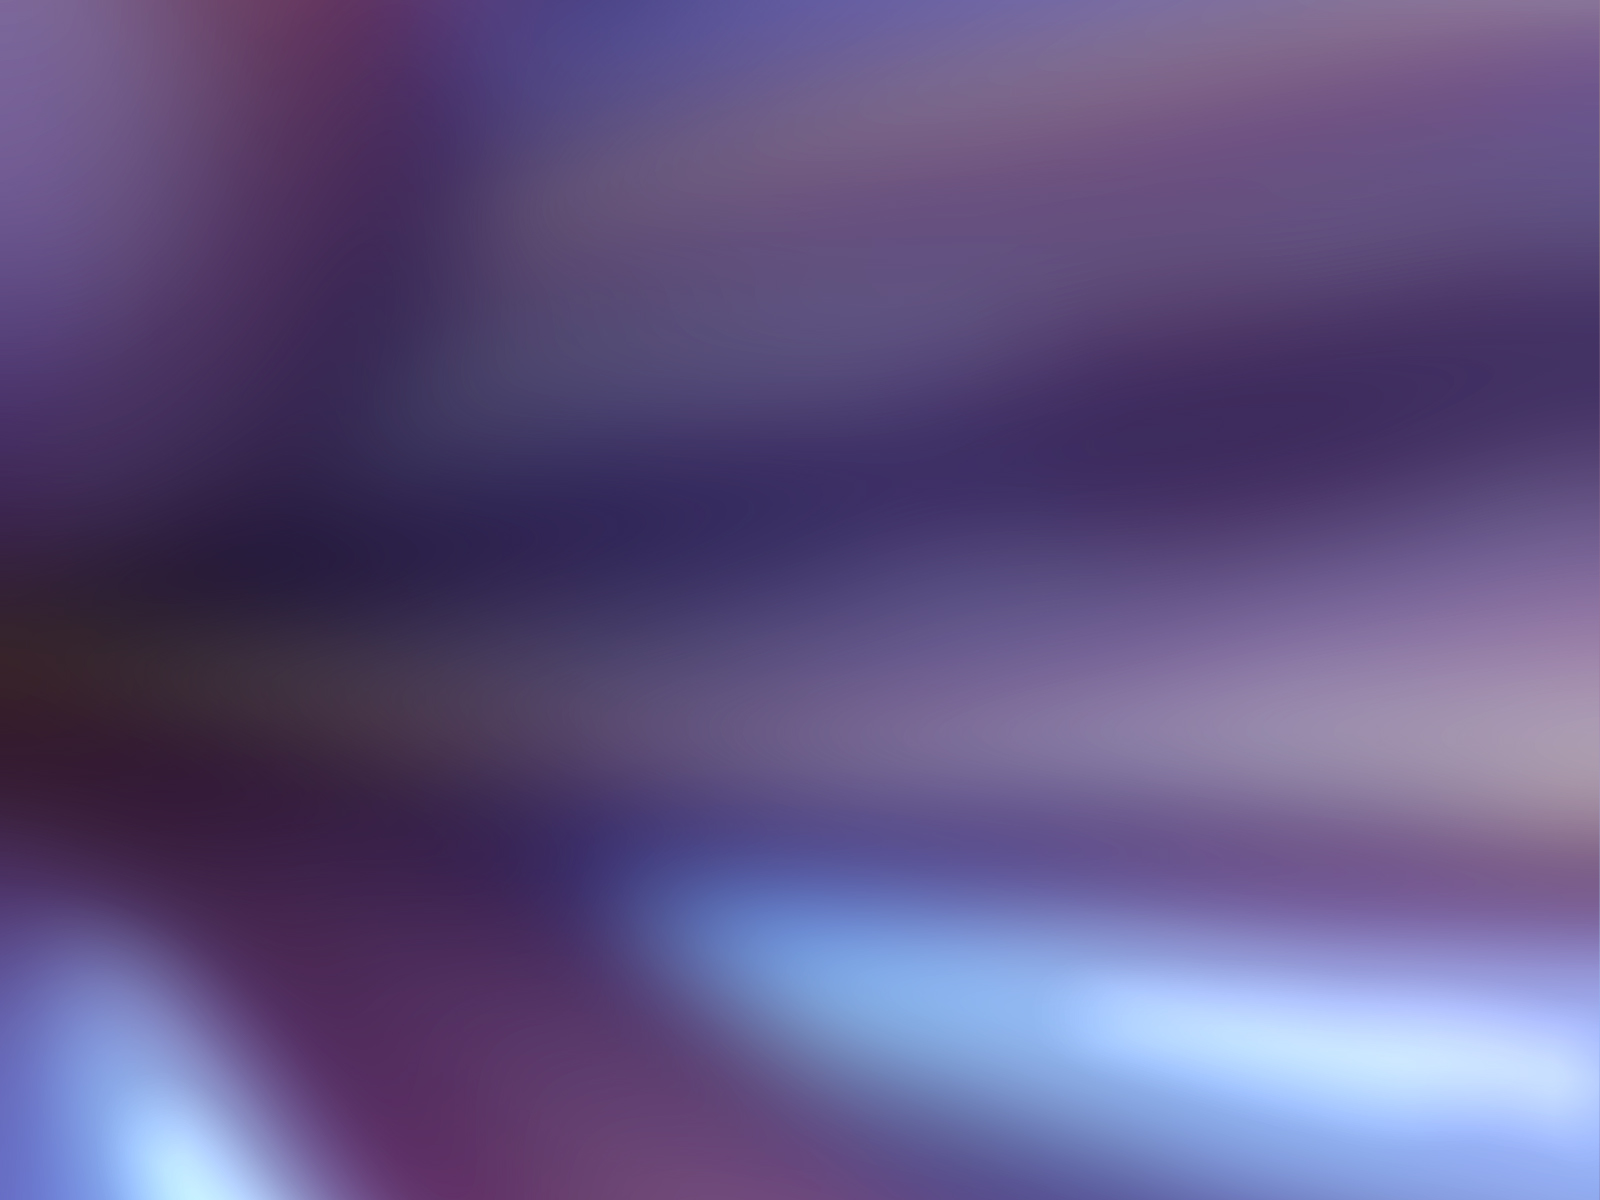 purple windows background